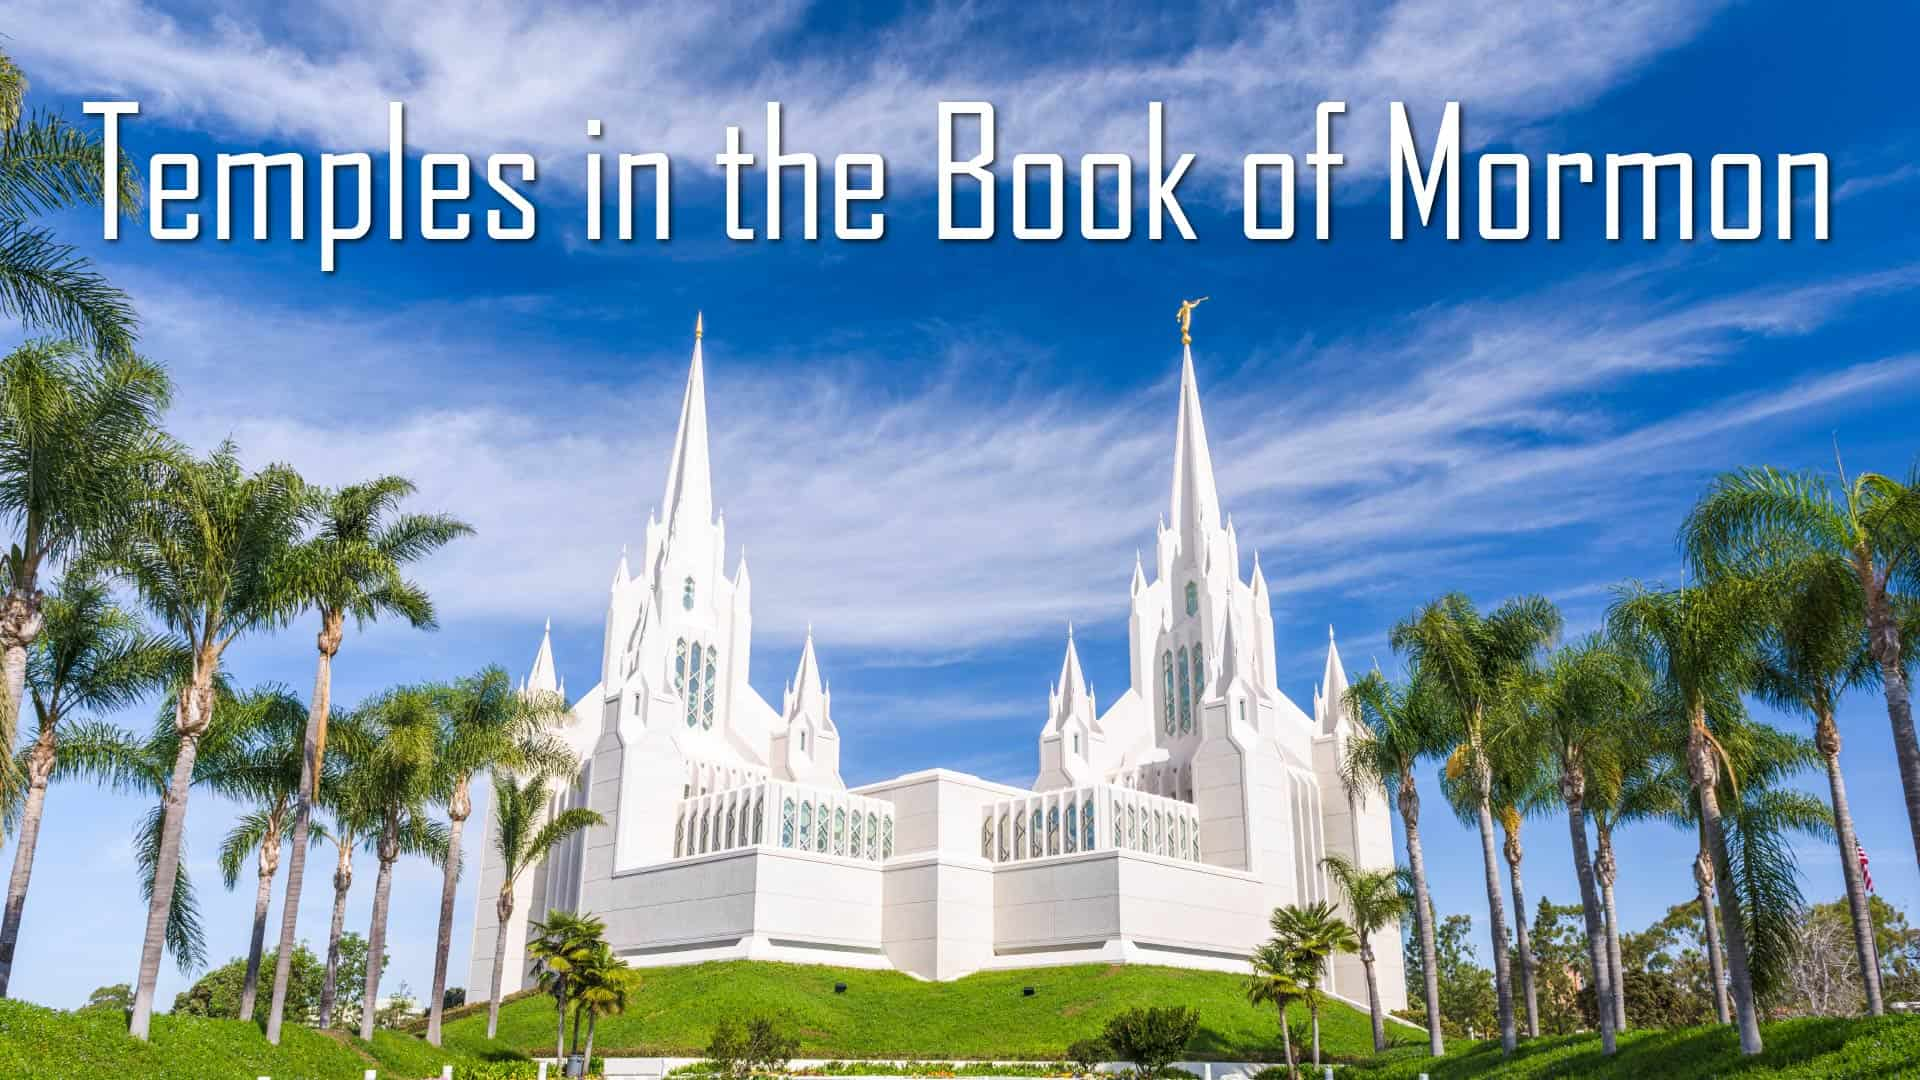 Tempels in the Book of Mormon